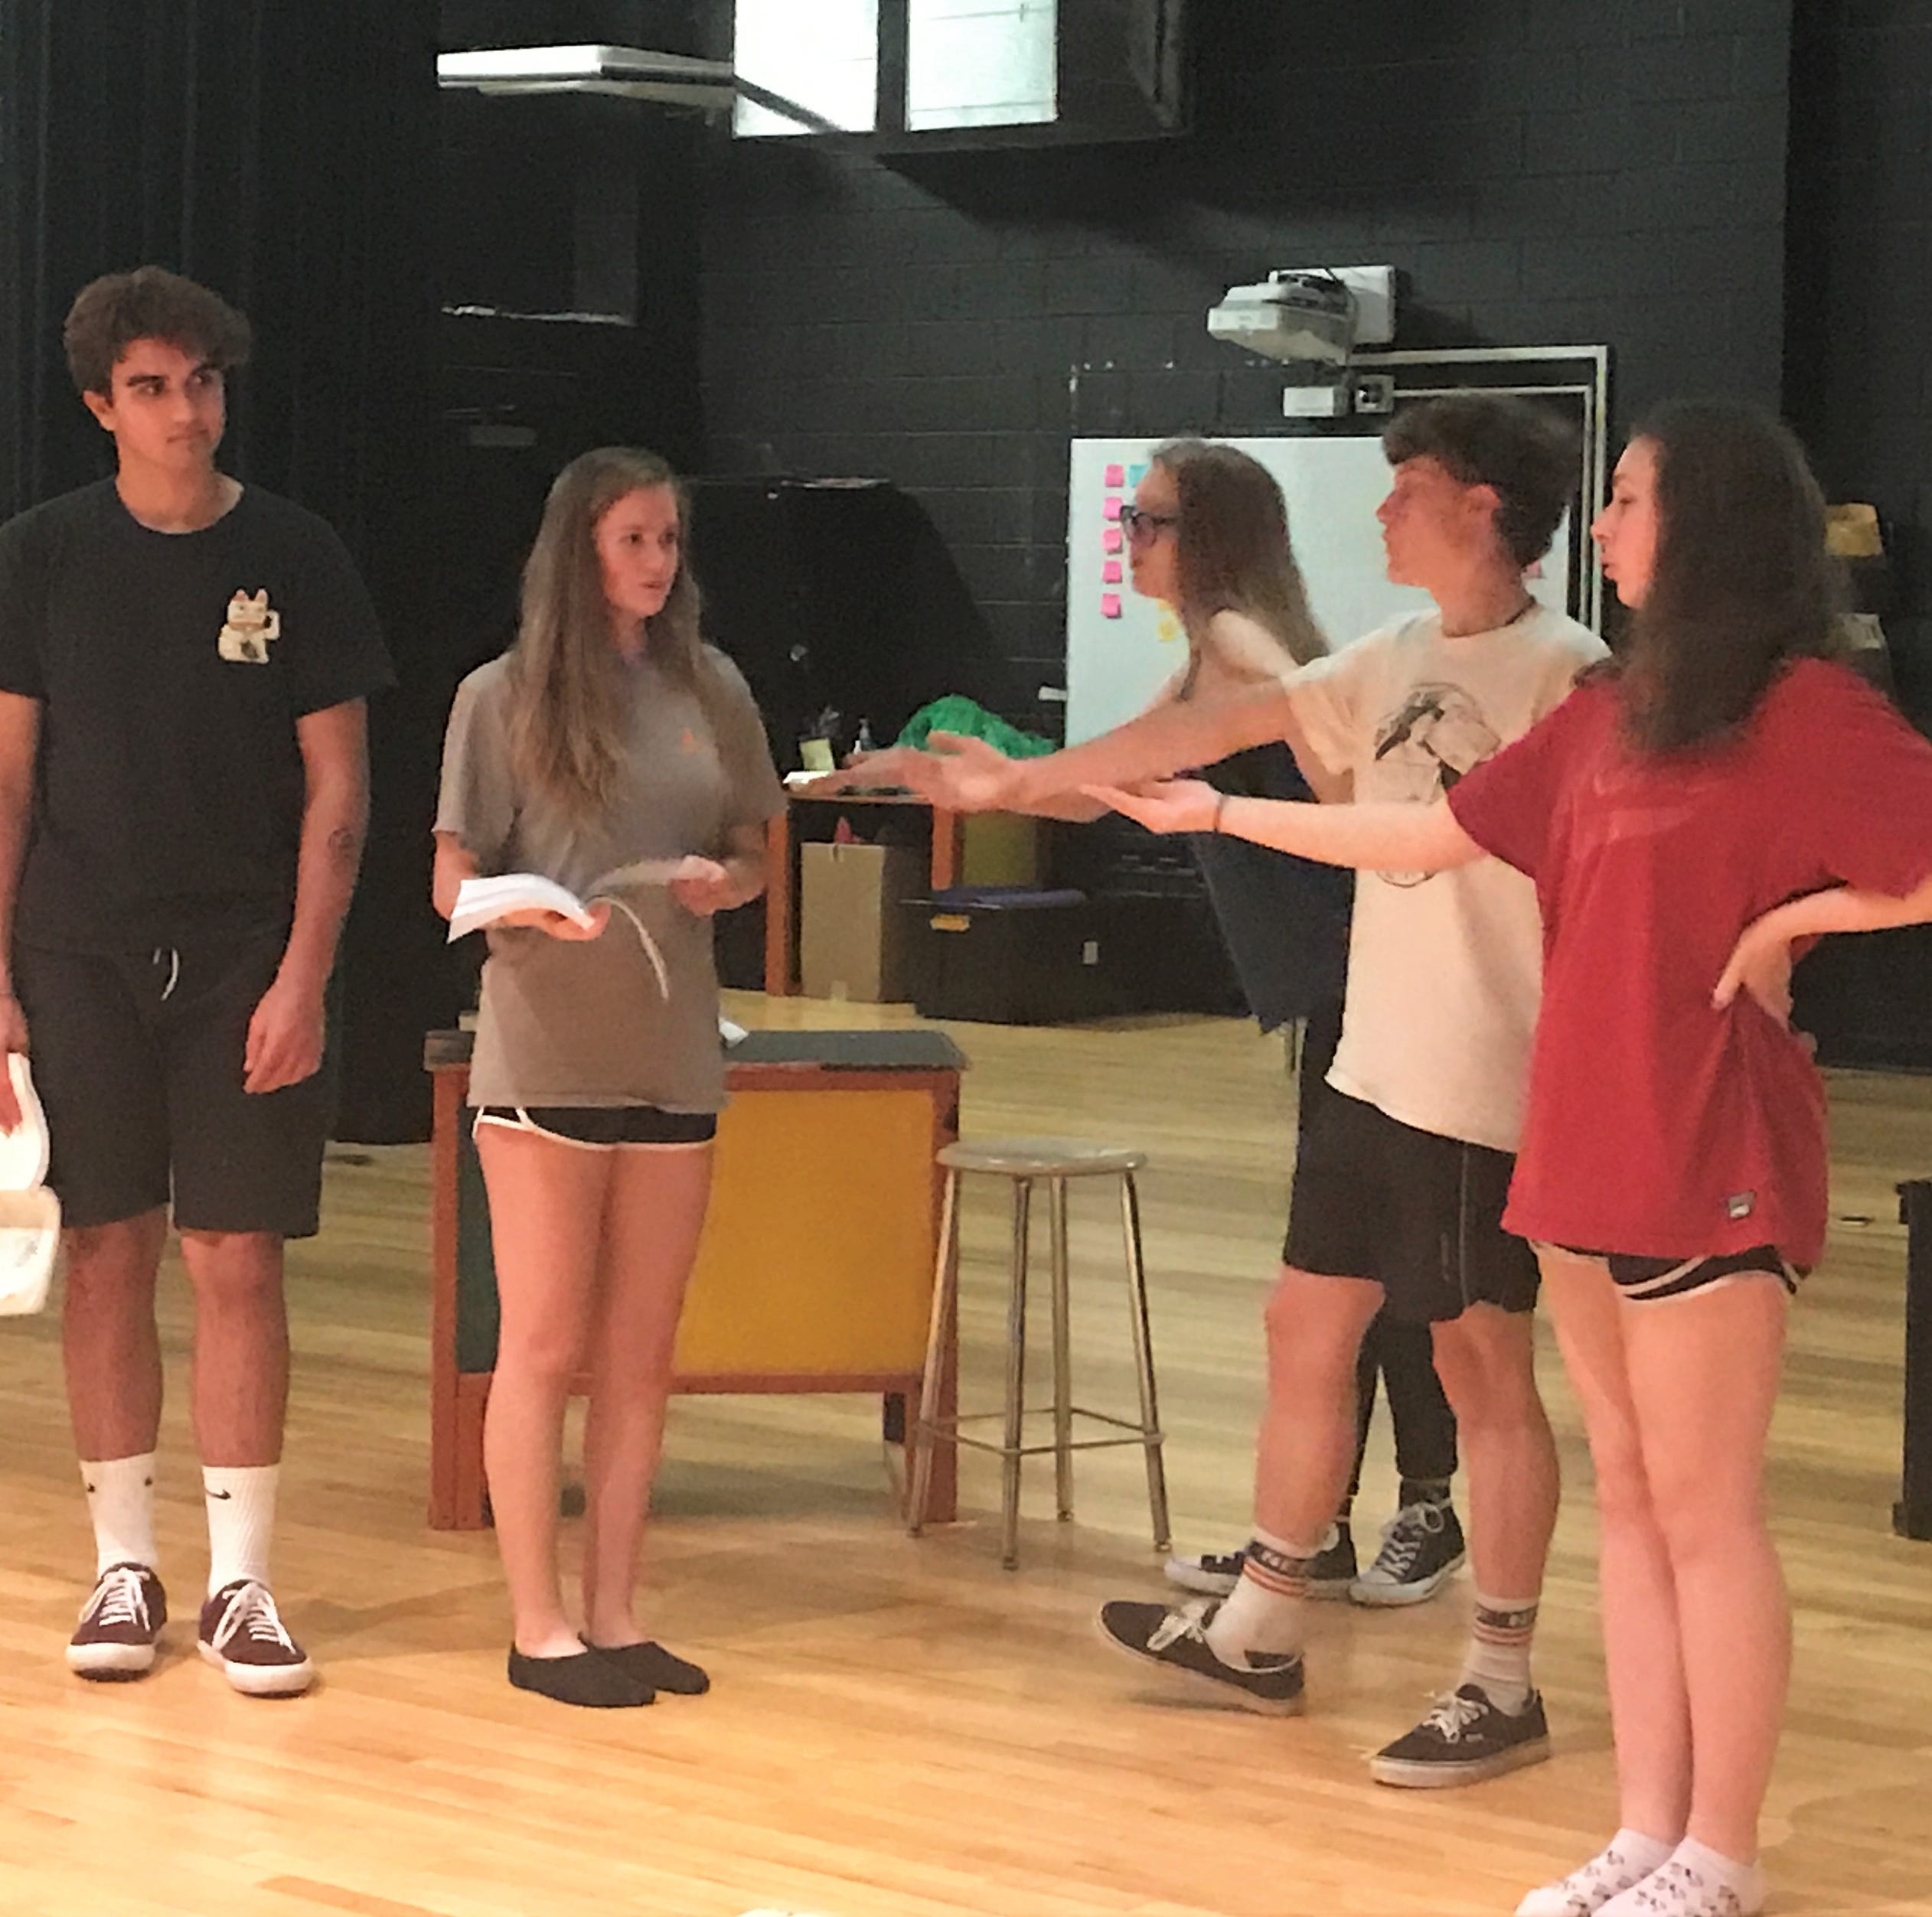 Owen performing arts department to present spring musical in May